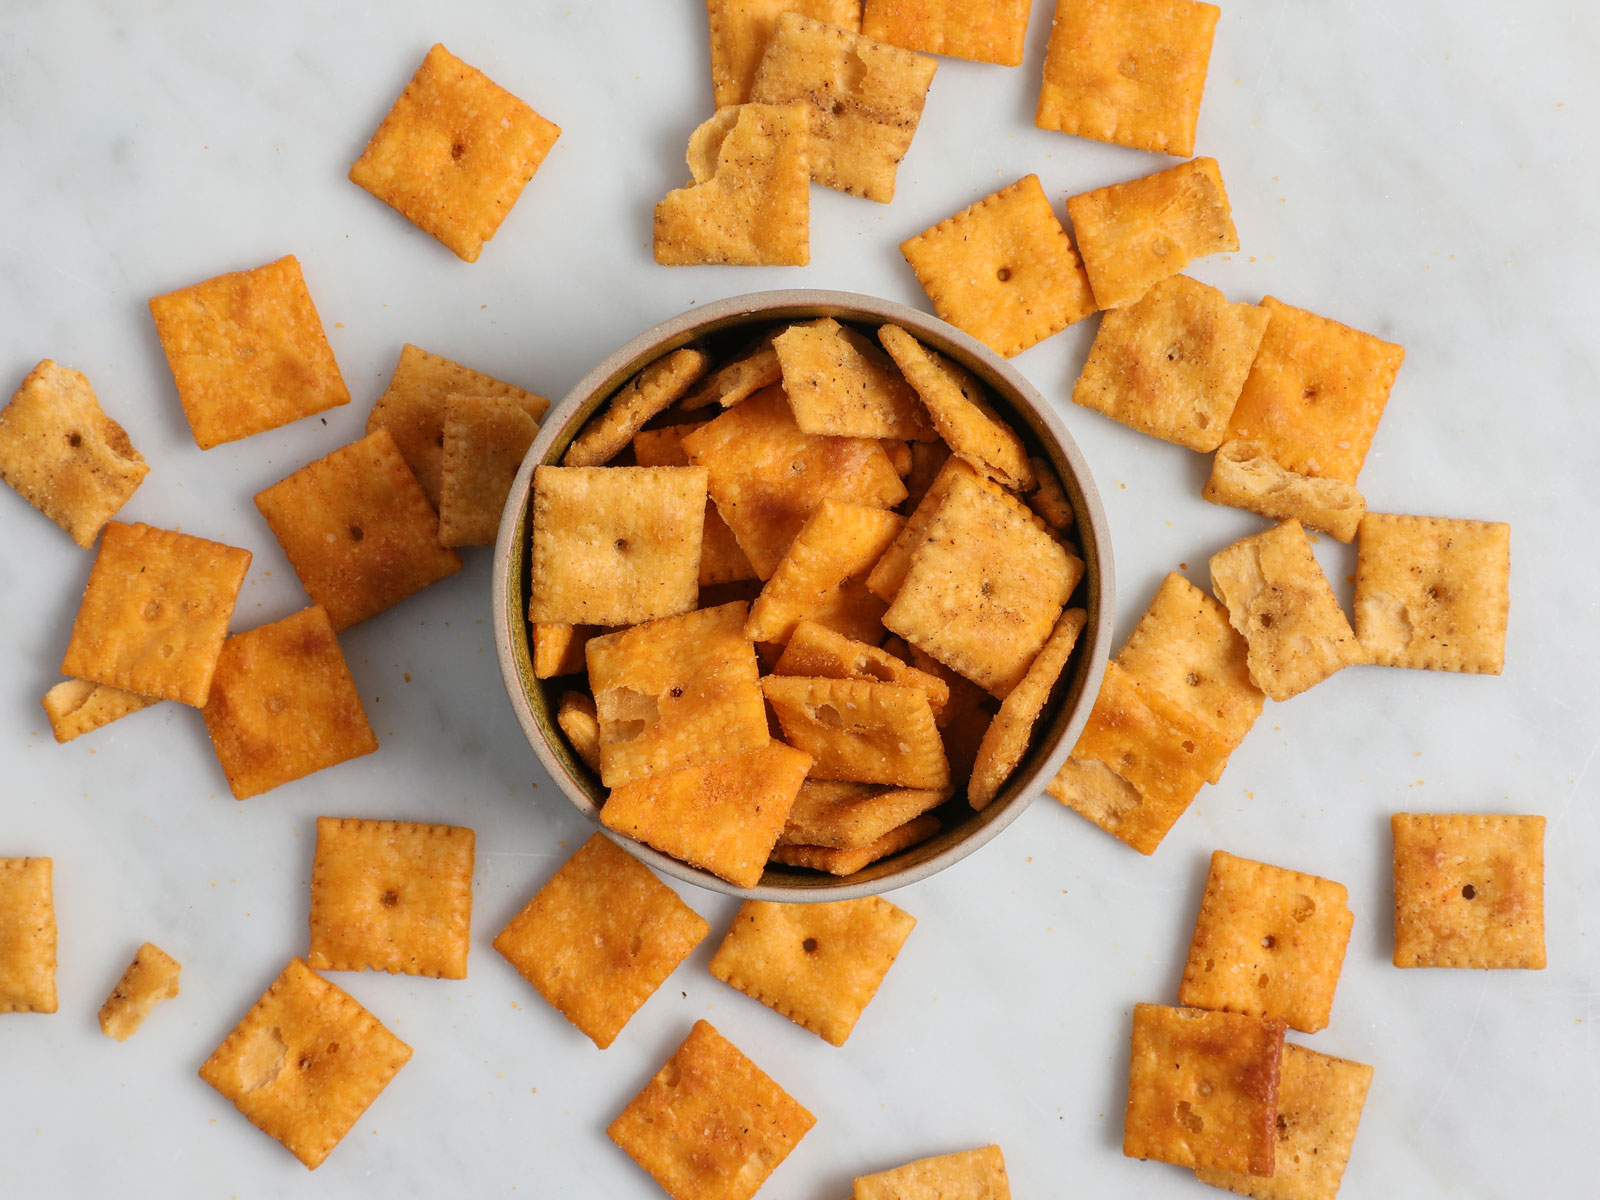 Duoz Cheddar and Bacon Cheez-Its